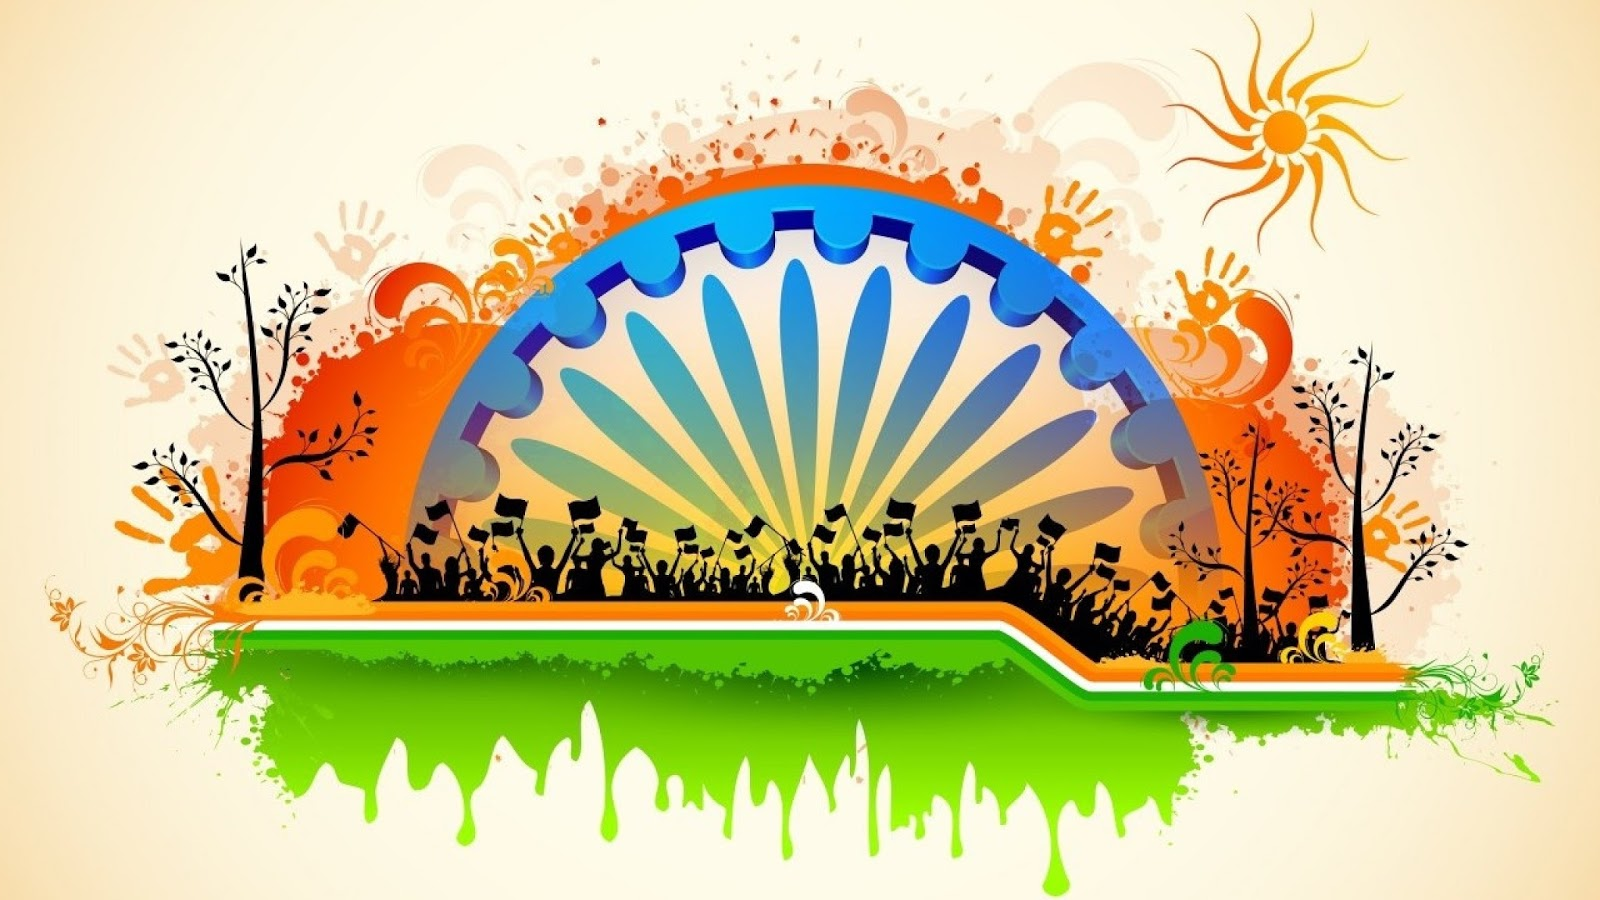 Republic Day - this will be the answer to the question: What a holiday in Bashkiria on October 11 85